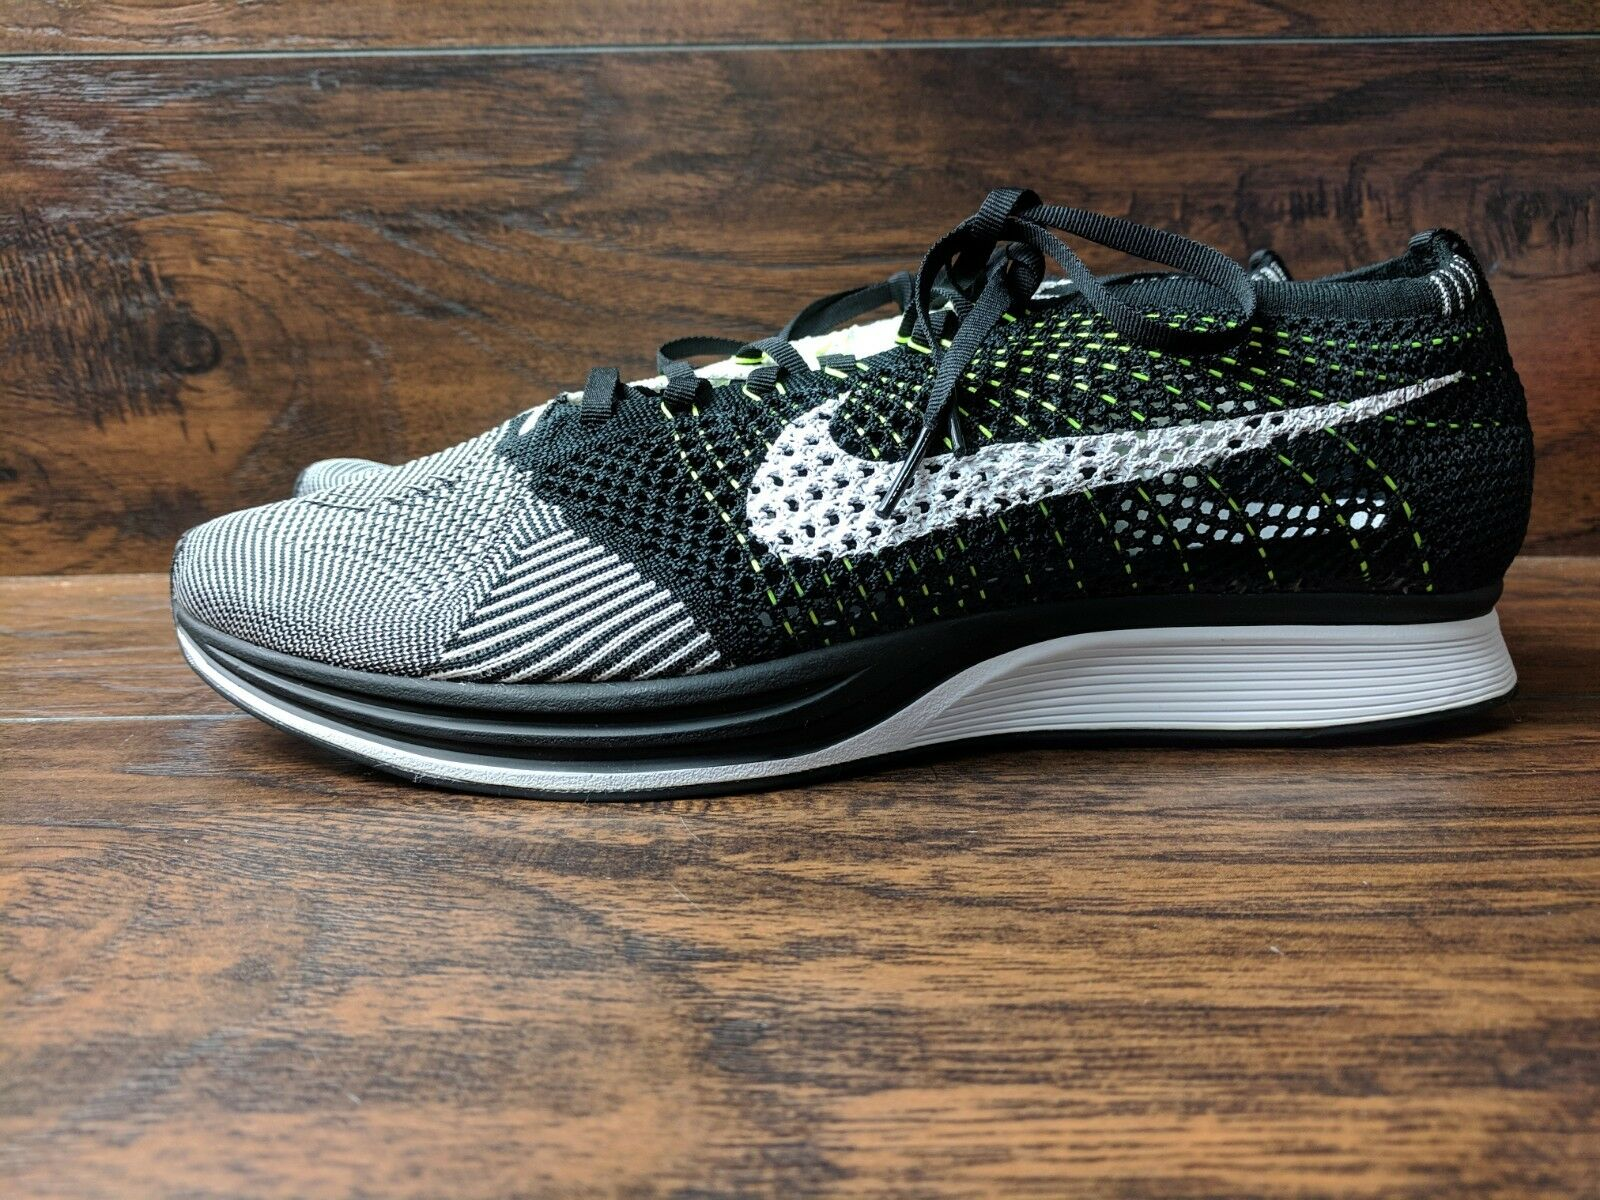 c225fedcb1 Brand New Nike Men's Orca Flyknit Racer Black White Neon Size 13 Running  Train